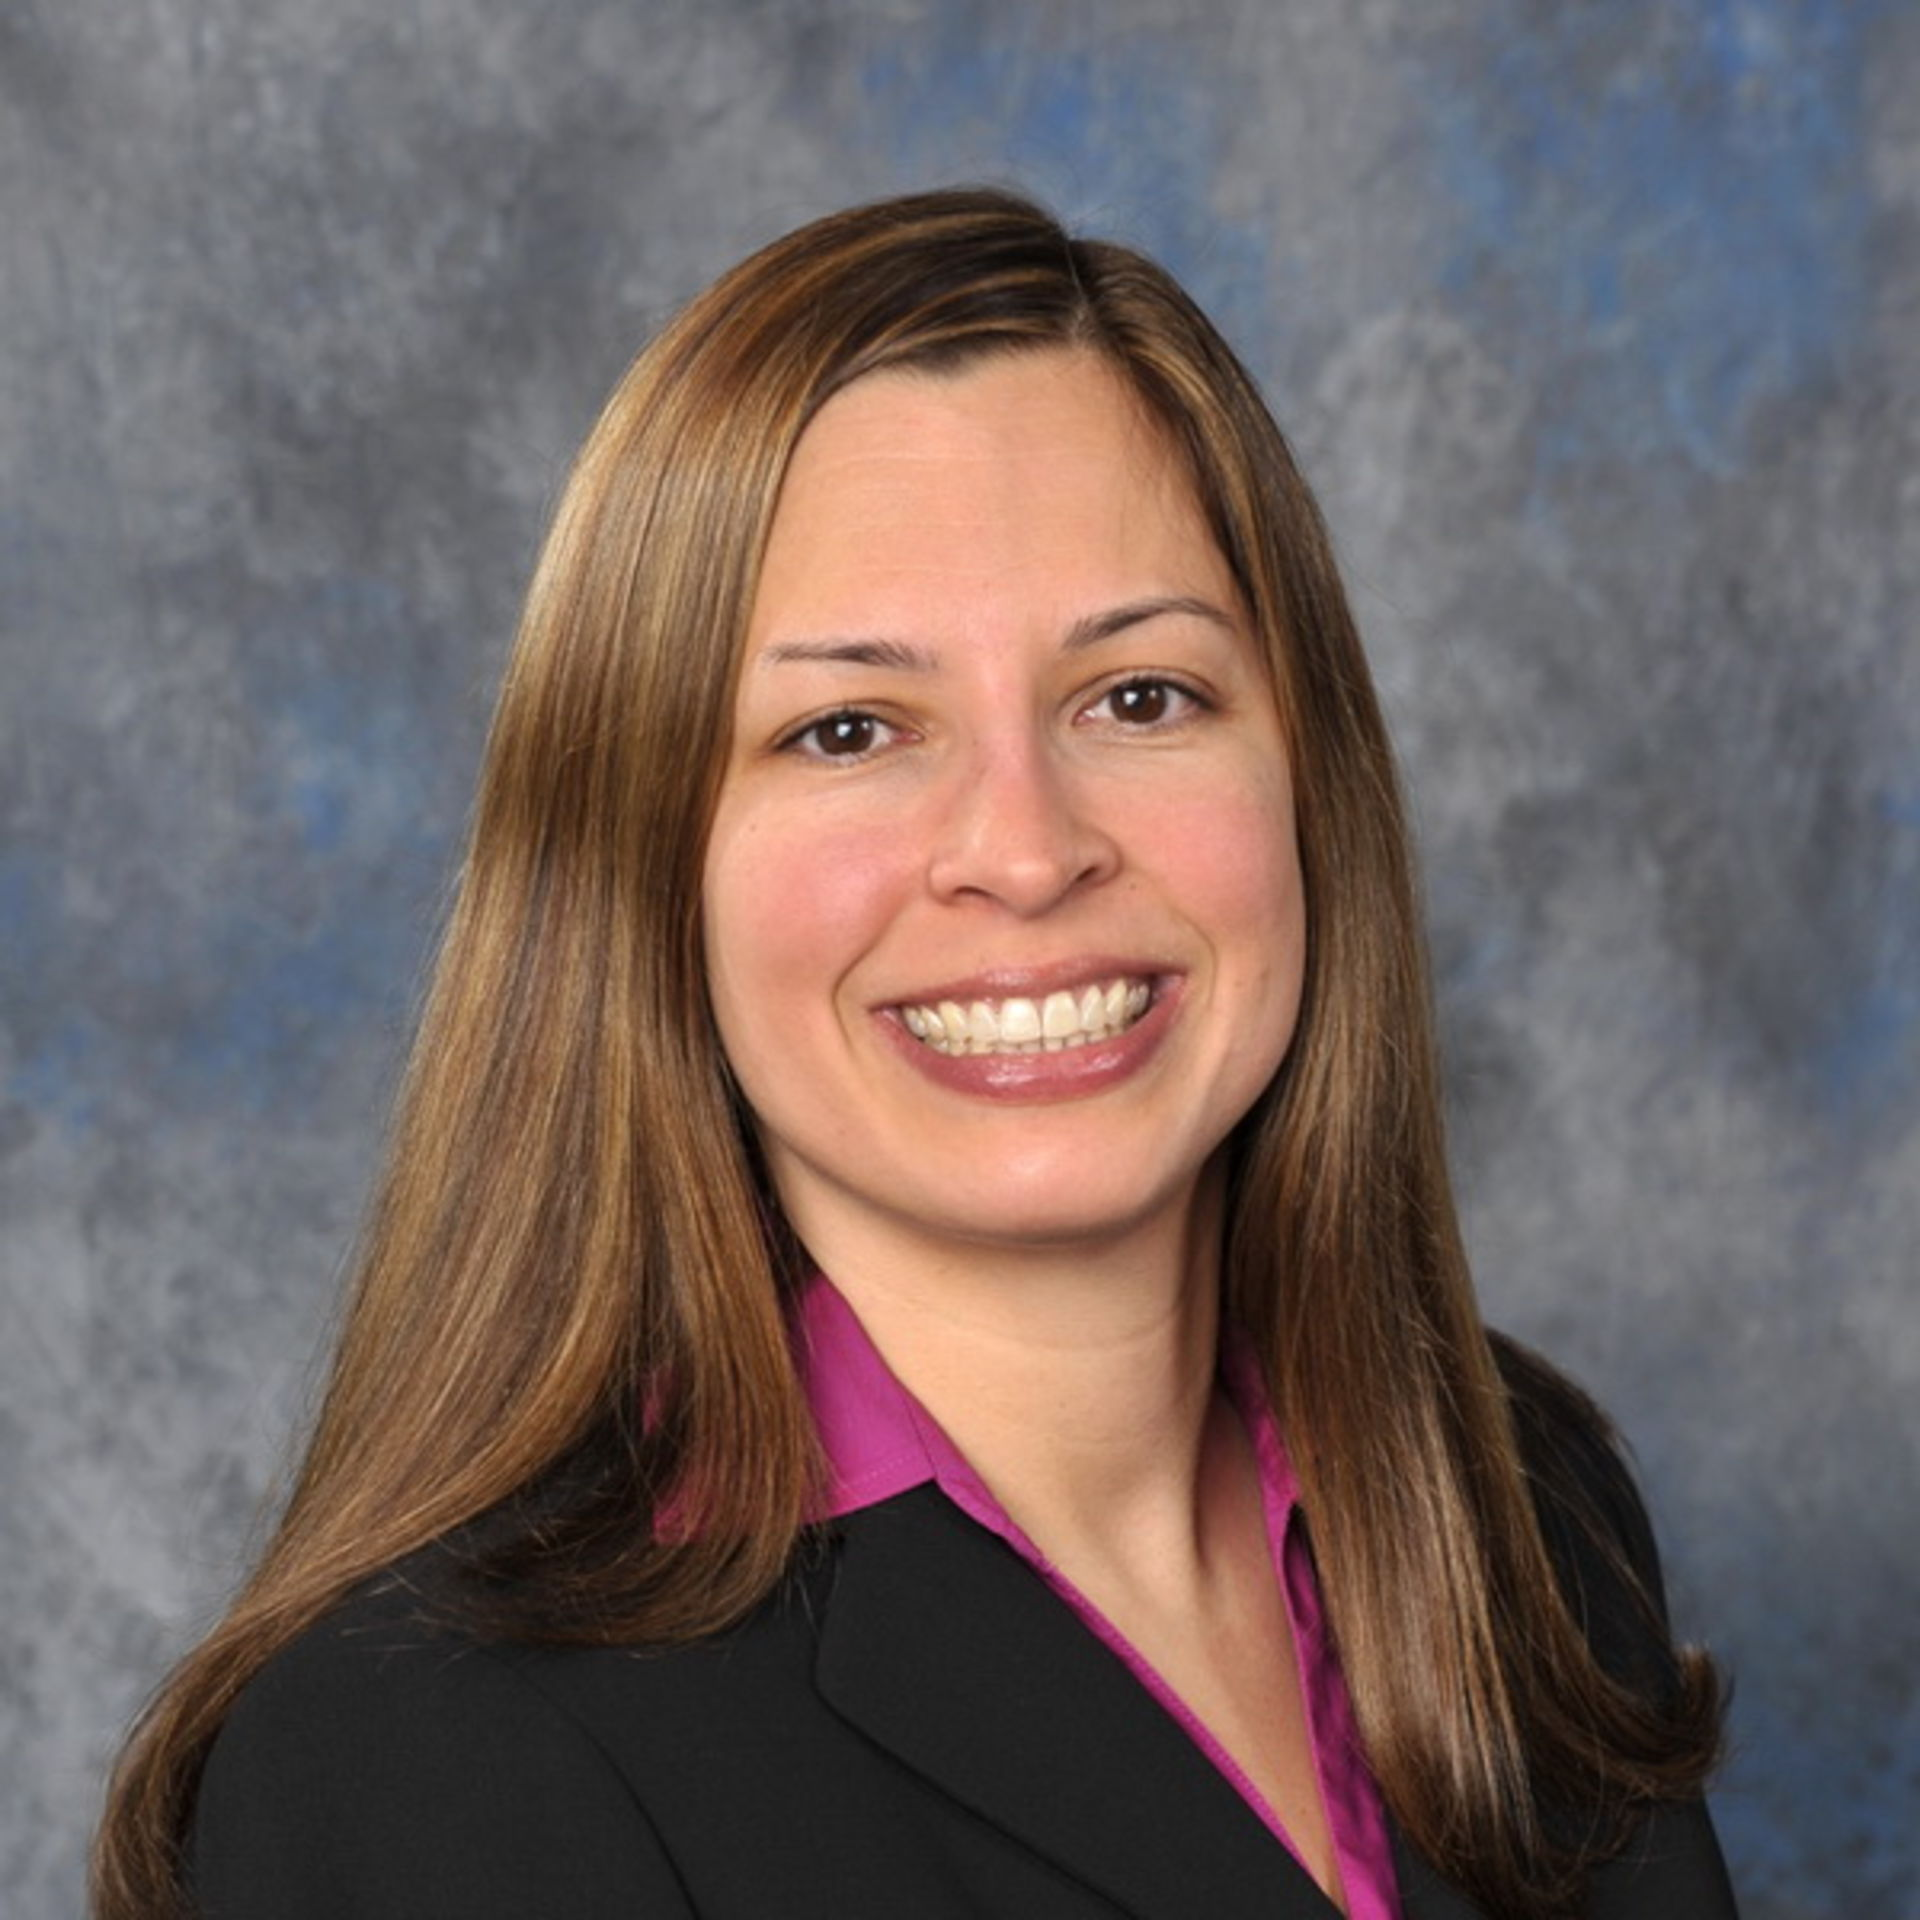 An Interview with Lender, Laura Bice, with Inland Bank (Celeste Barr)